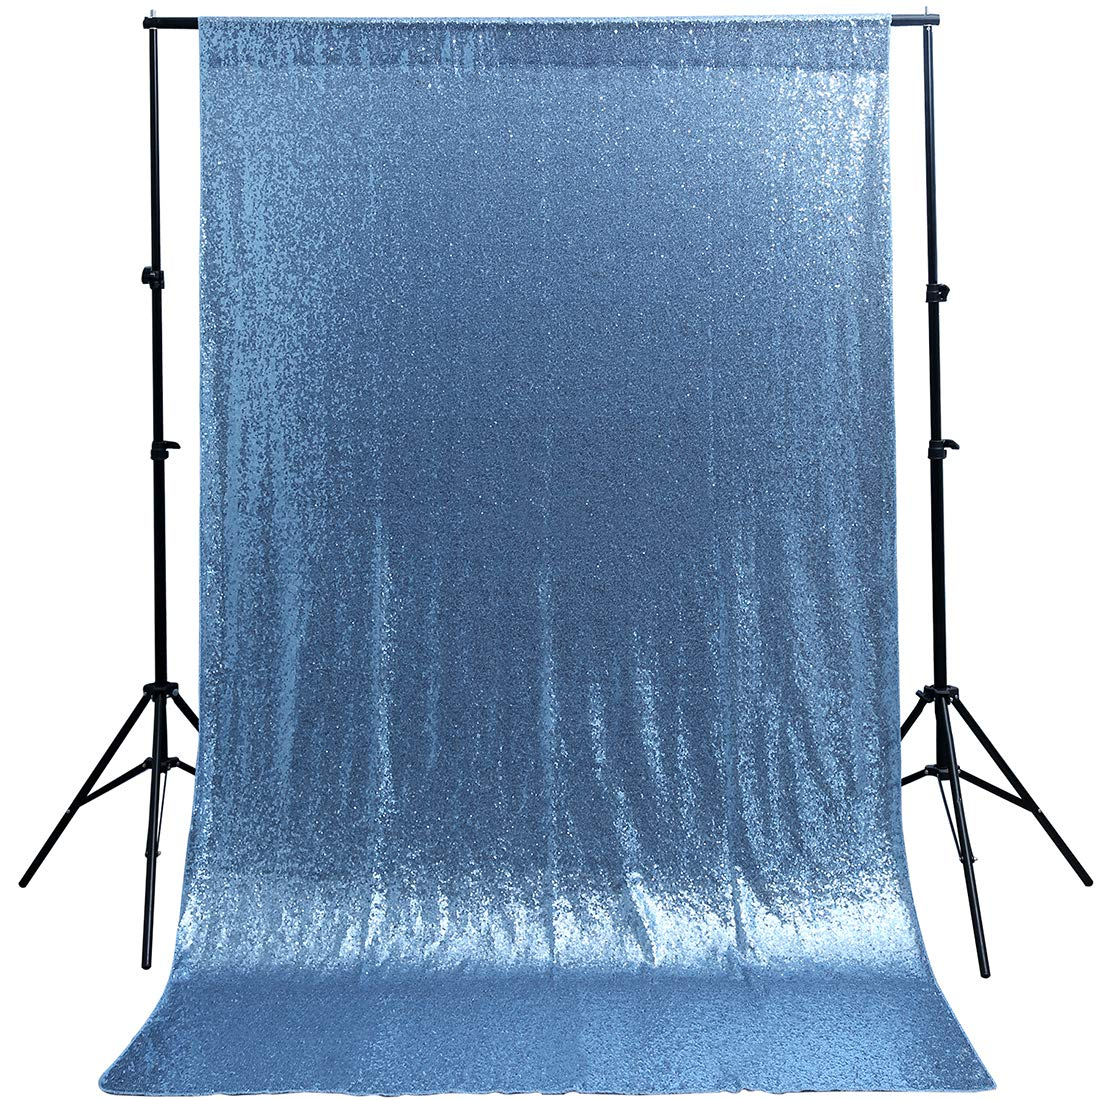 B-COOL Sequin Backdrop 4ft x 8ft Glitter Backdrop Baby Blue Sparkly Photo Booth for Wedding Party Birthday Decor Shiny Photograyphy